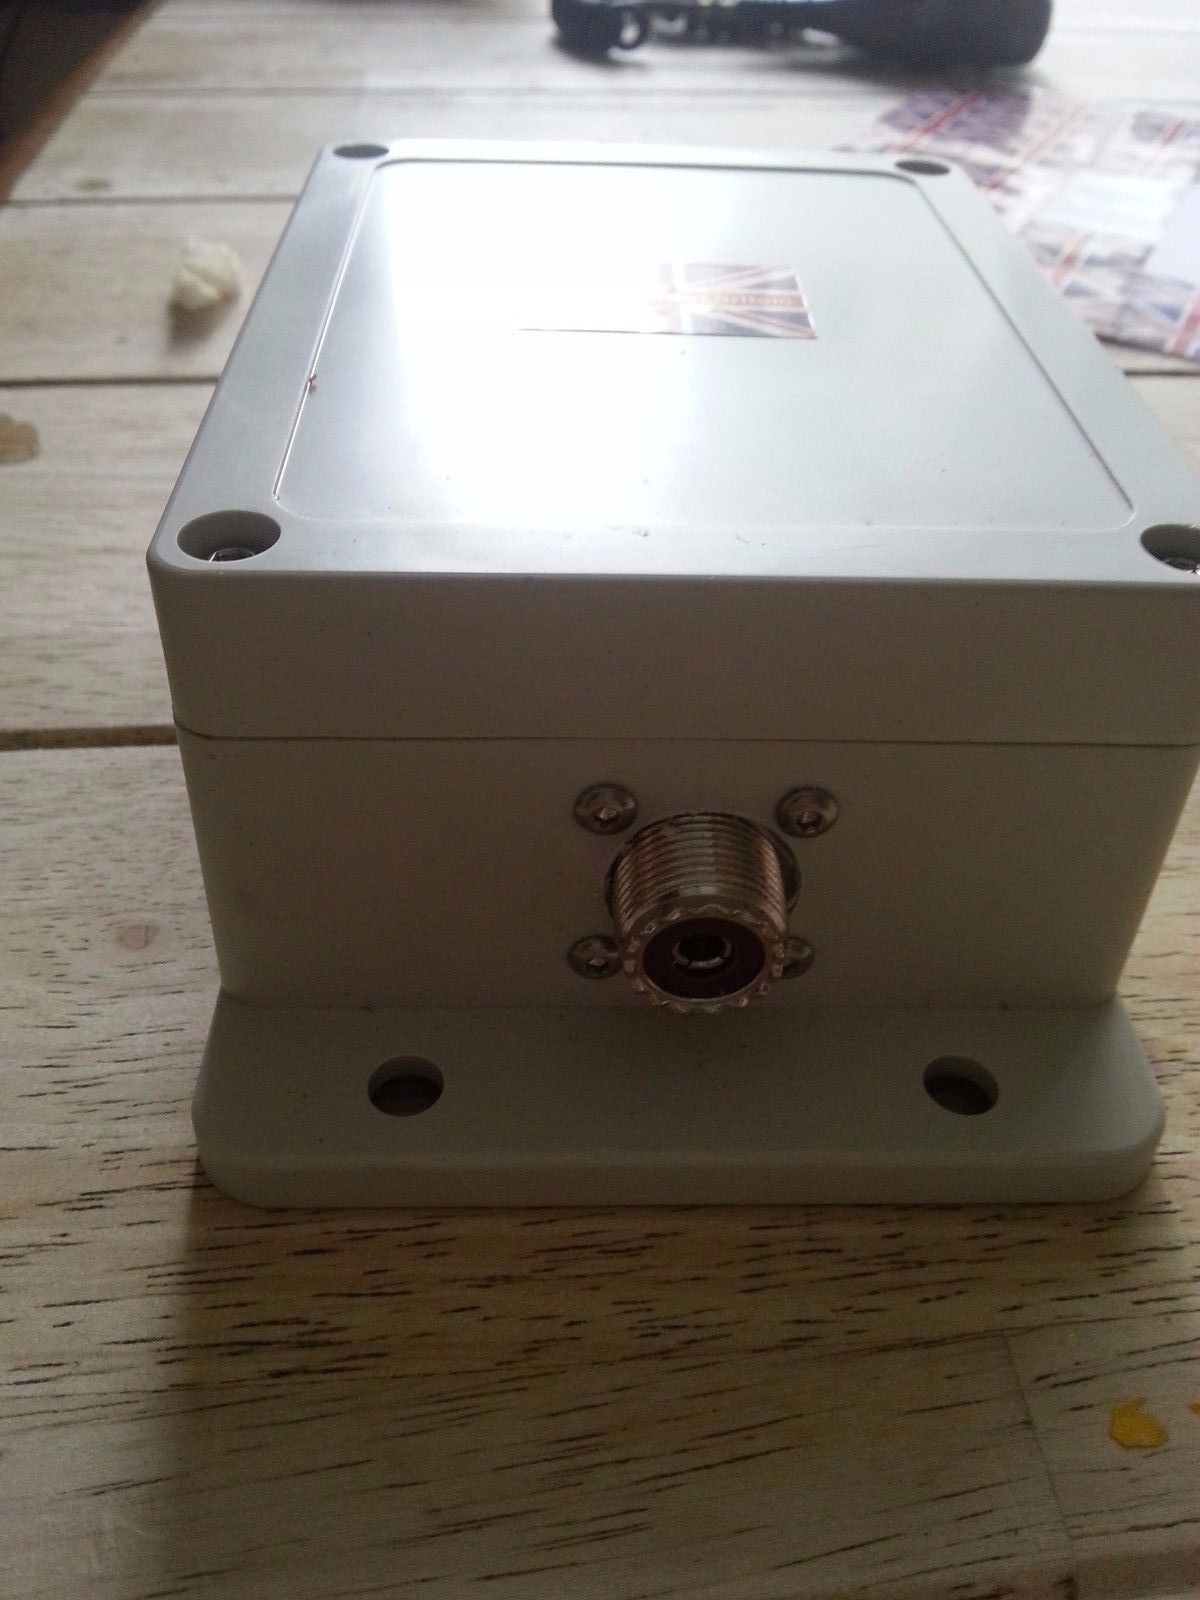 1:1 Current Balun 1.2kW 1.2kw watts 72MHz K Material so239 - so239